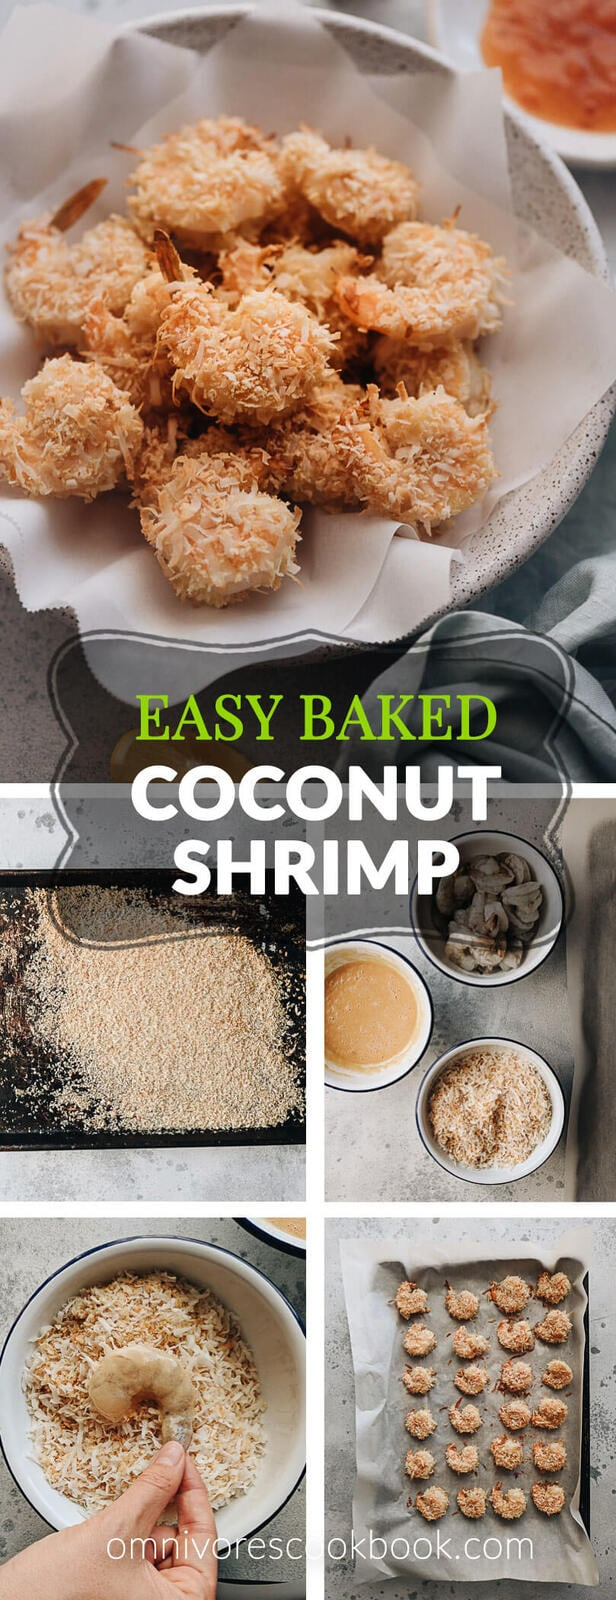 Easy Coconut Shrimp with sweet chili dipping sauce - Sweet, crispy, healthy, and delightful, my coconut shrimp are baked, not fried, to give you that texture you want in a healthier format. #glutenfree #recipe